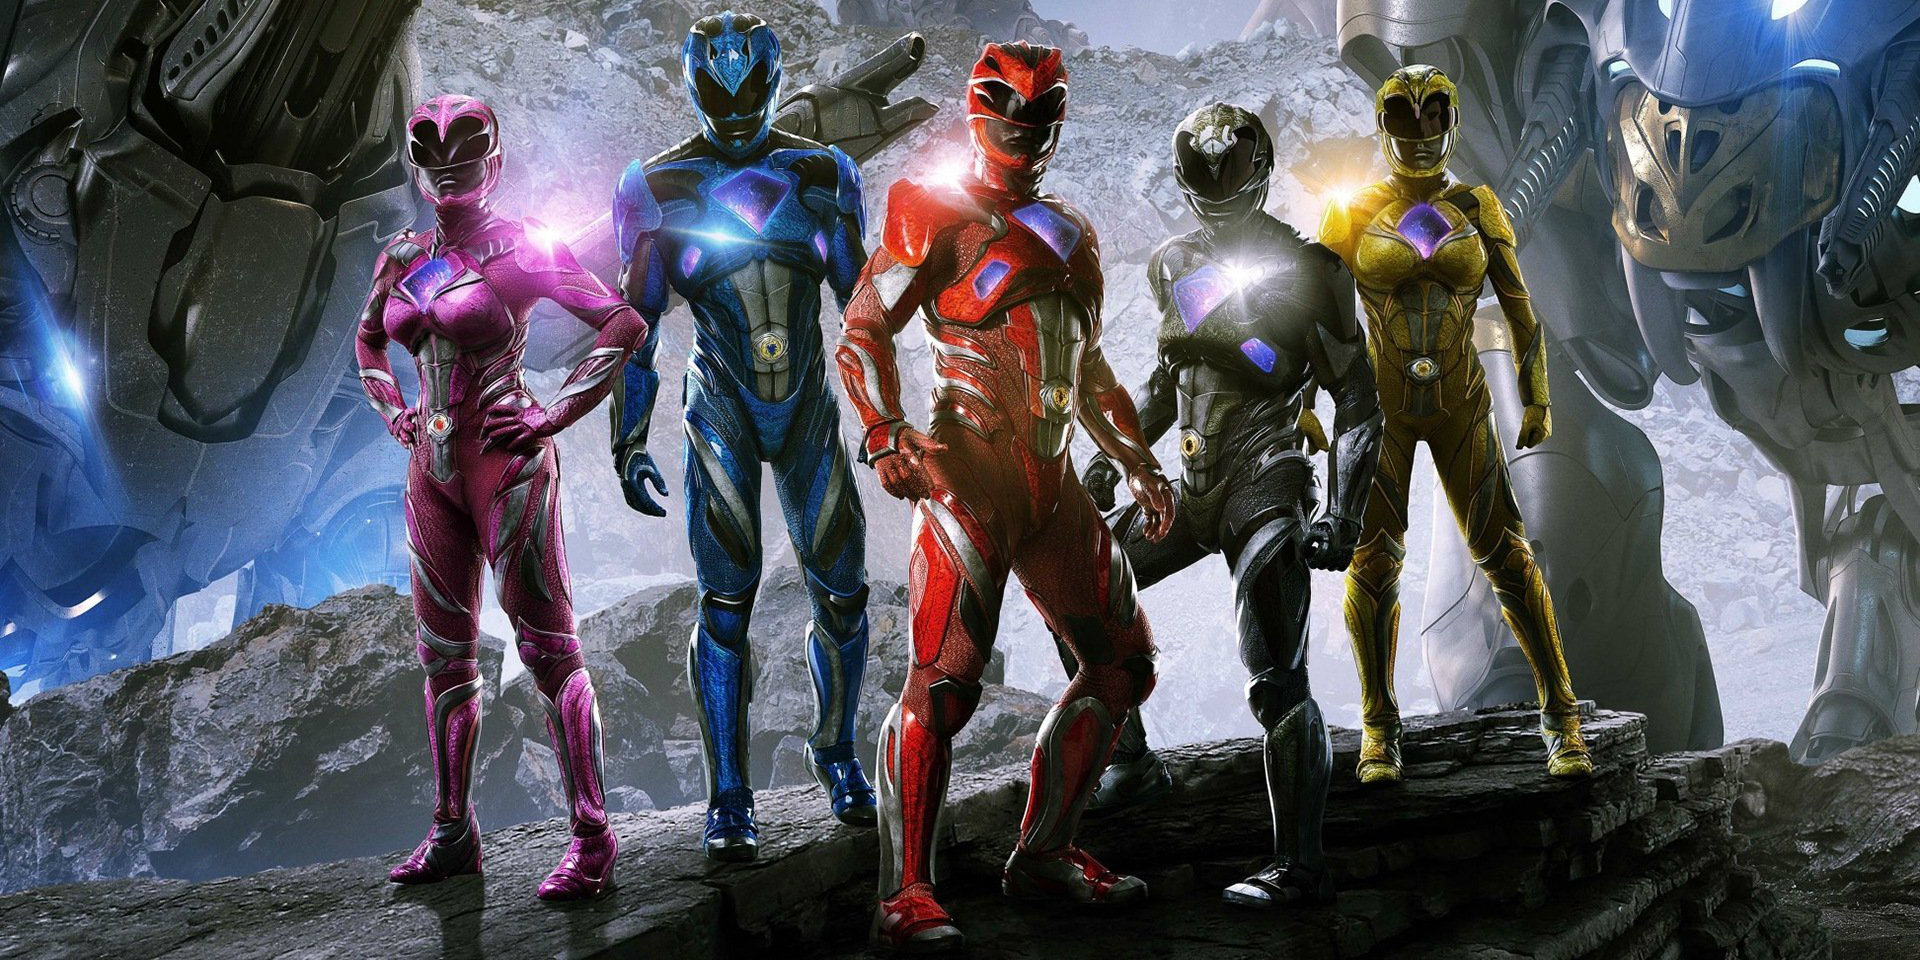 Hasbro anuncia sequência de Power Rangers nos cinemas